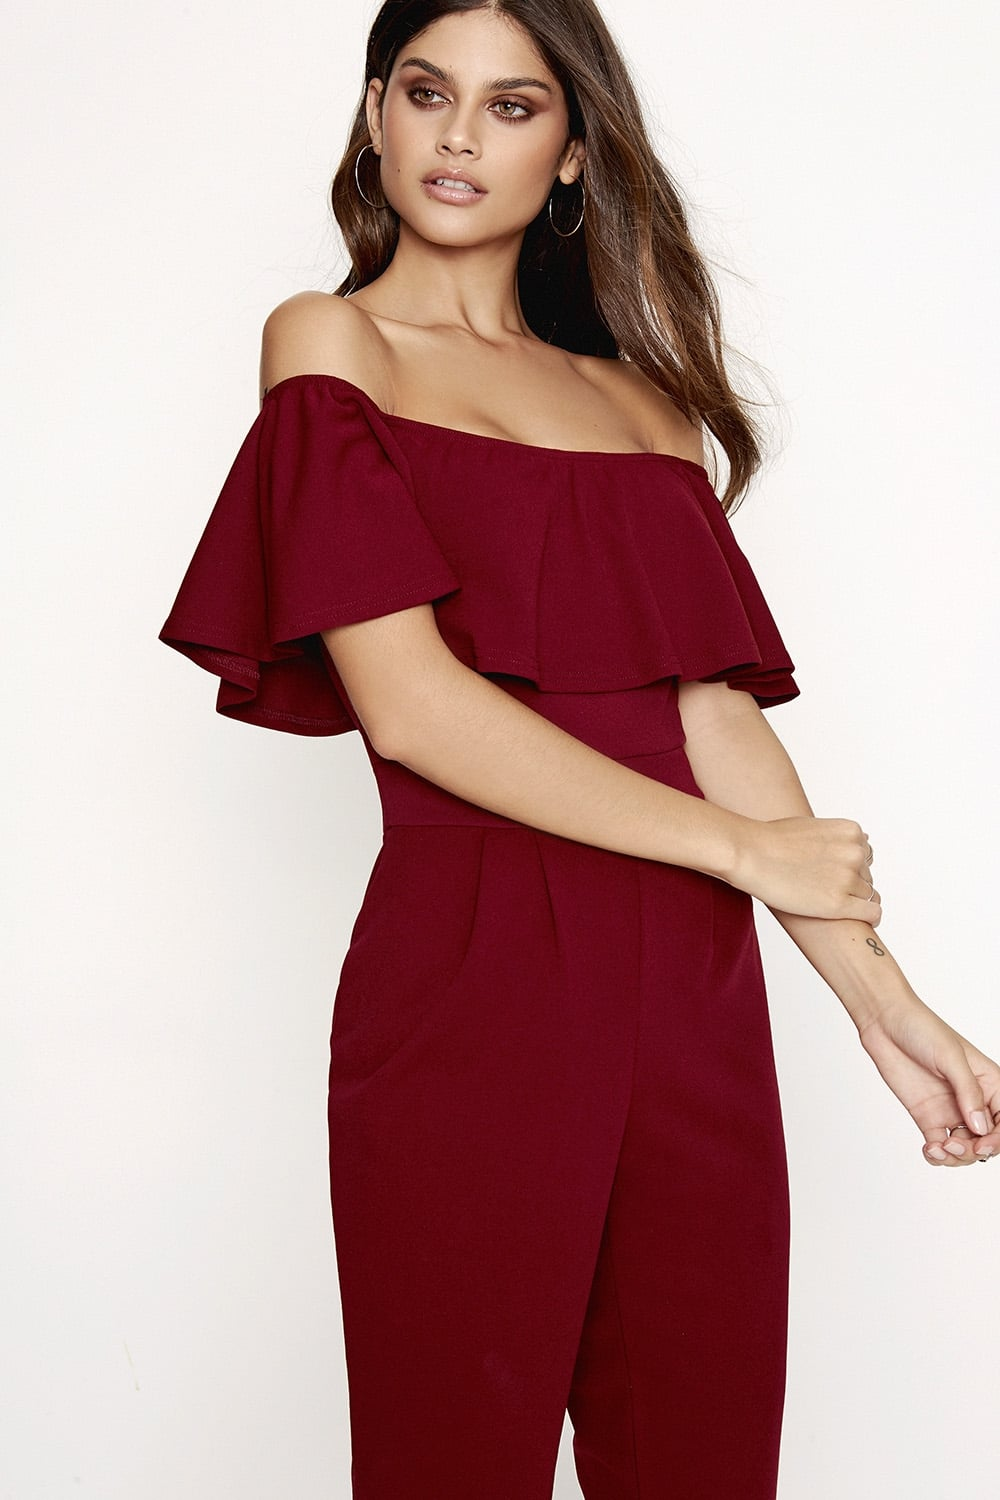 c97d3e579f Outlet Girls On Film Burgundy Jumpsuit - Outlet Girls On Film from ...